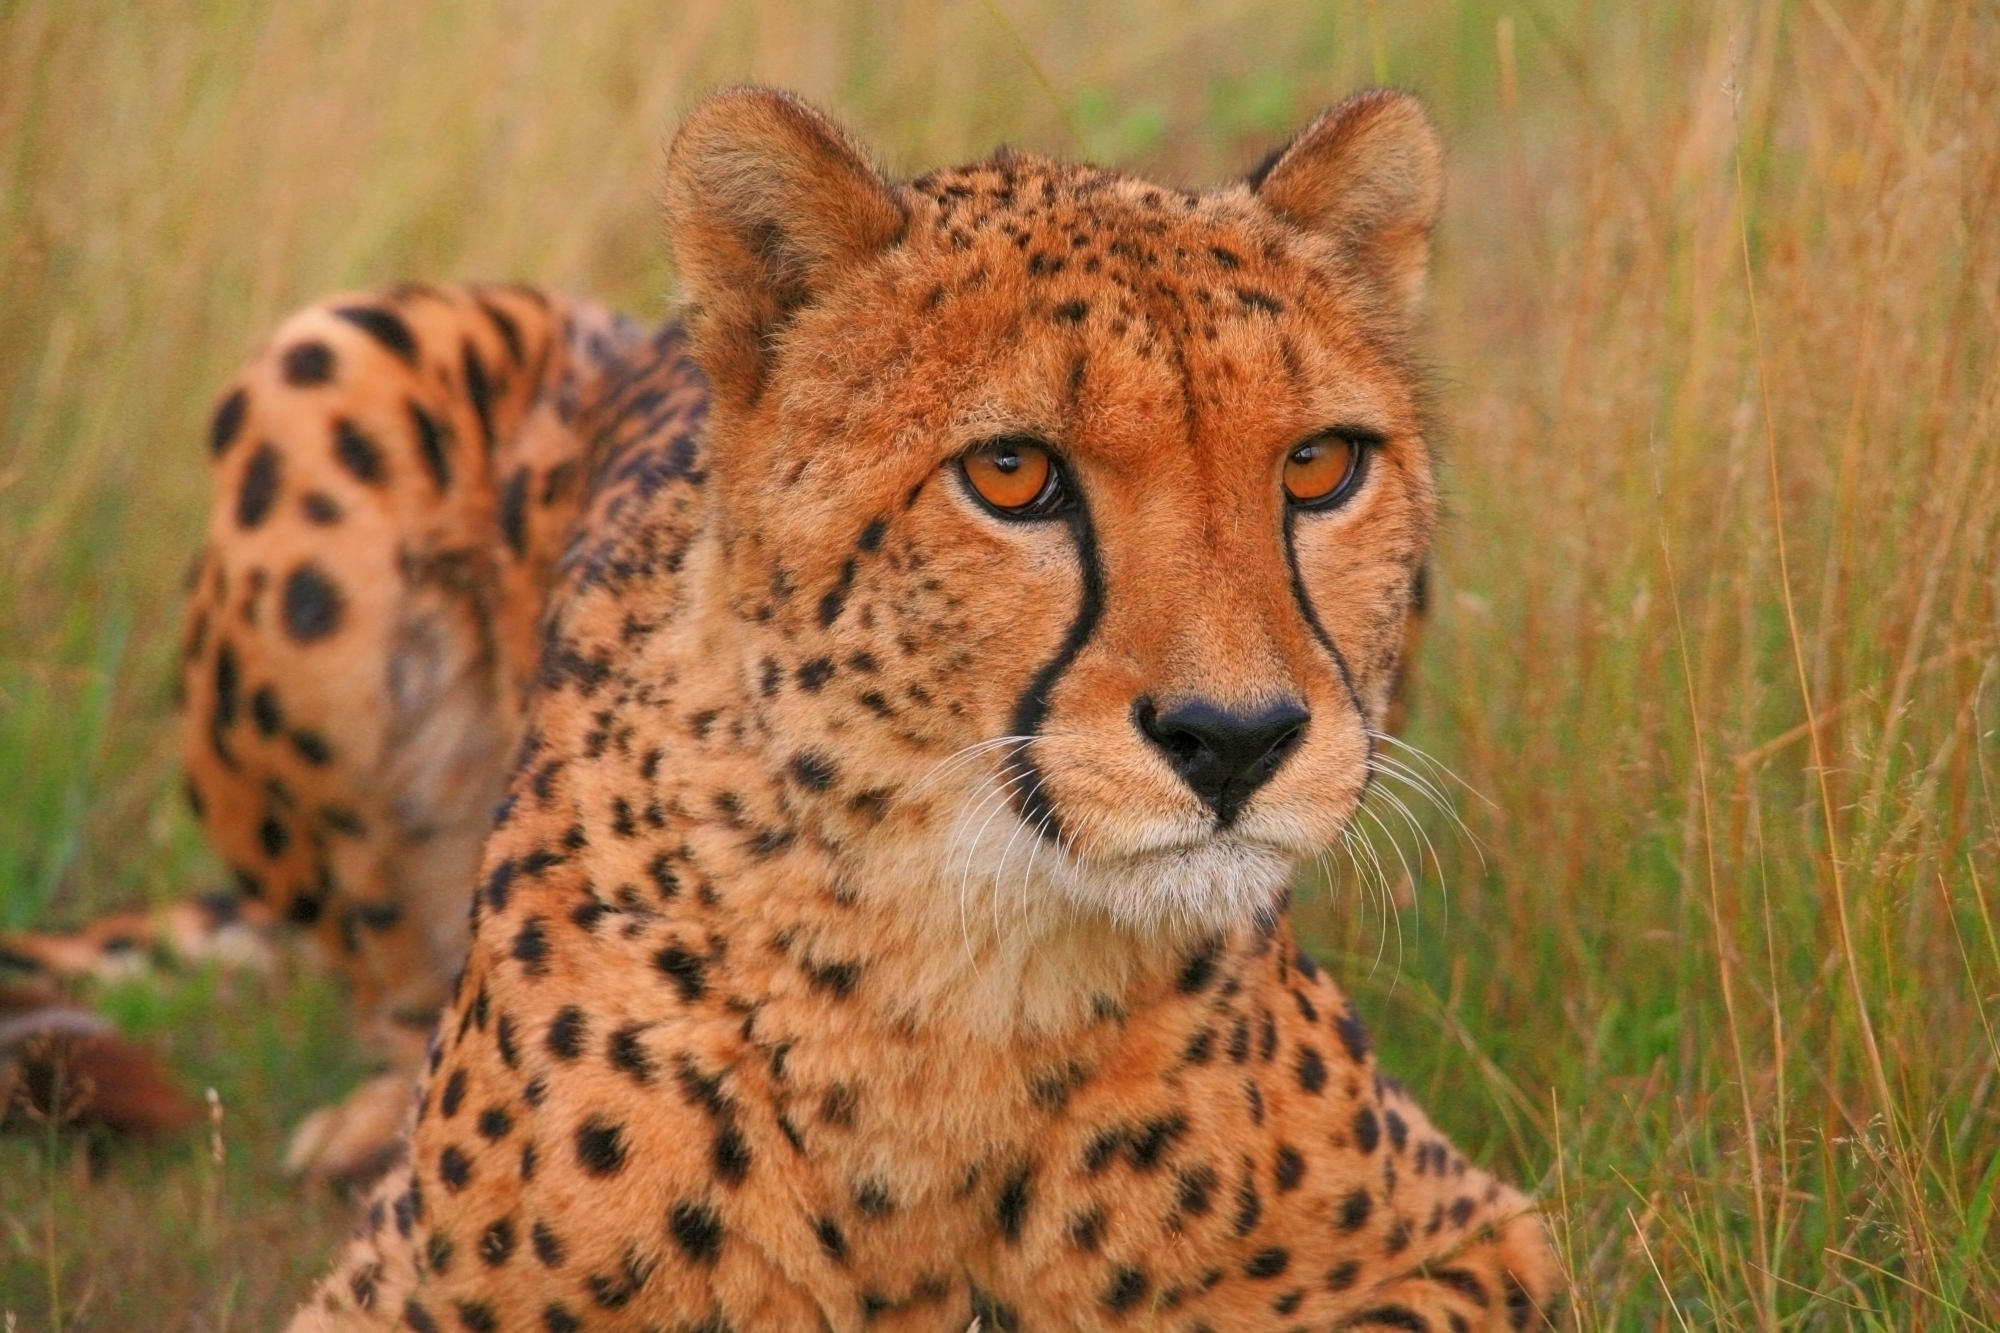 Peop The Cheetah, Wildlife Heritage Foundation, Kent, United Kingdom